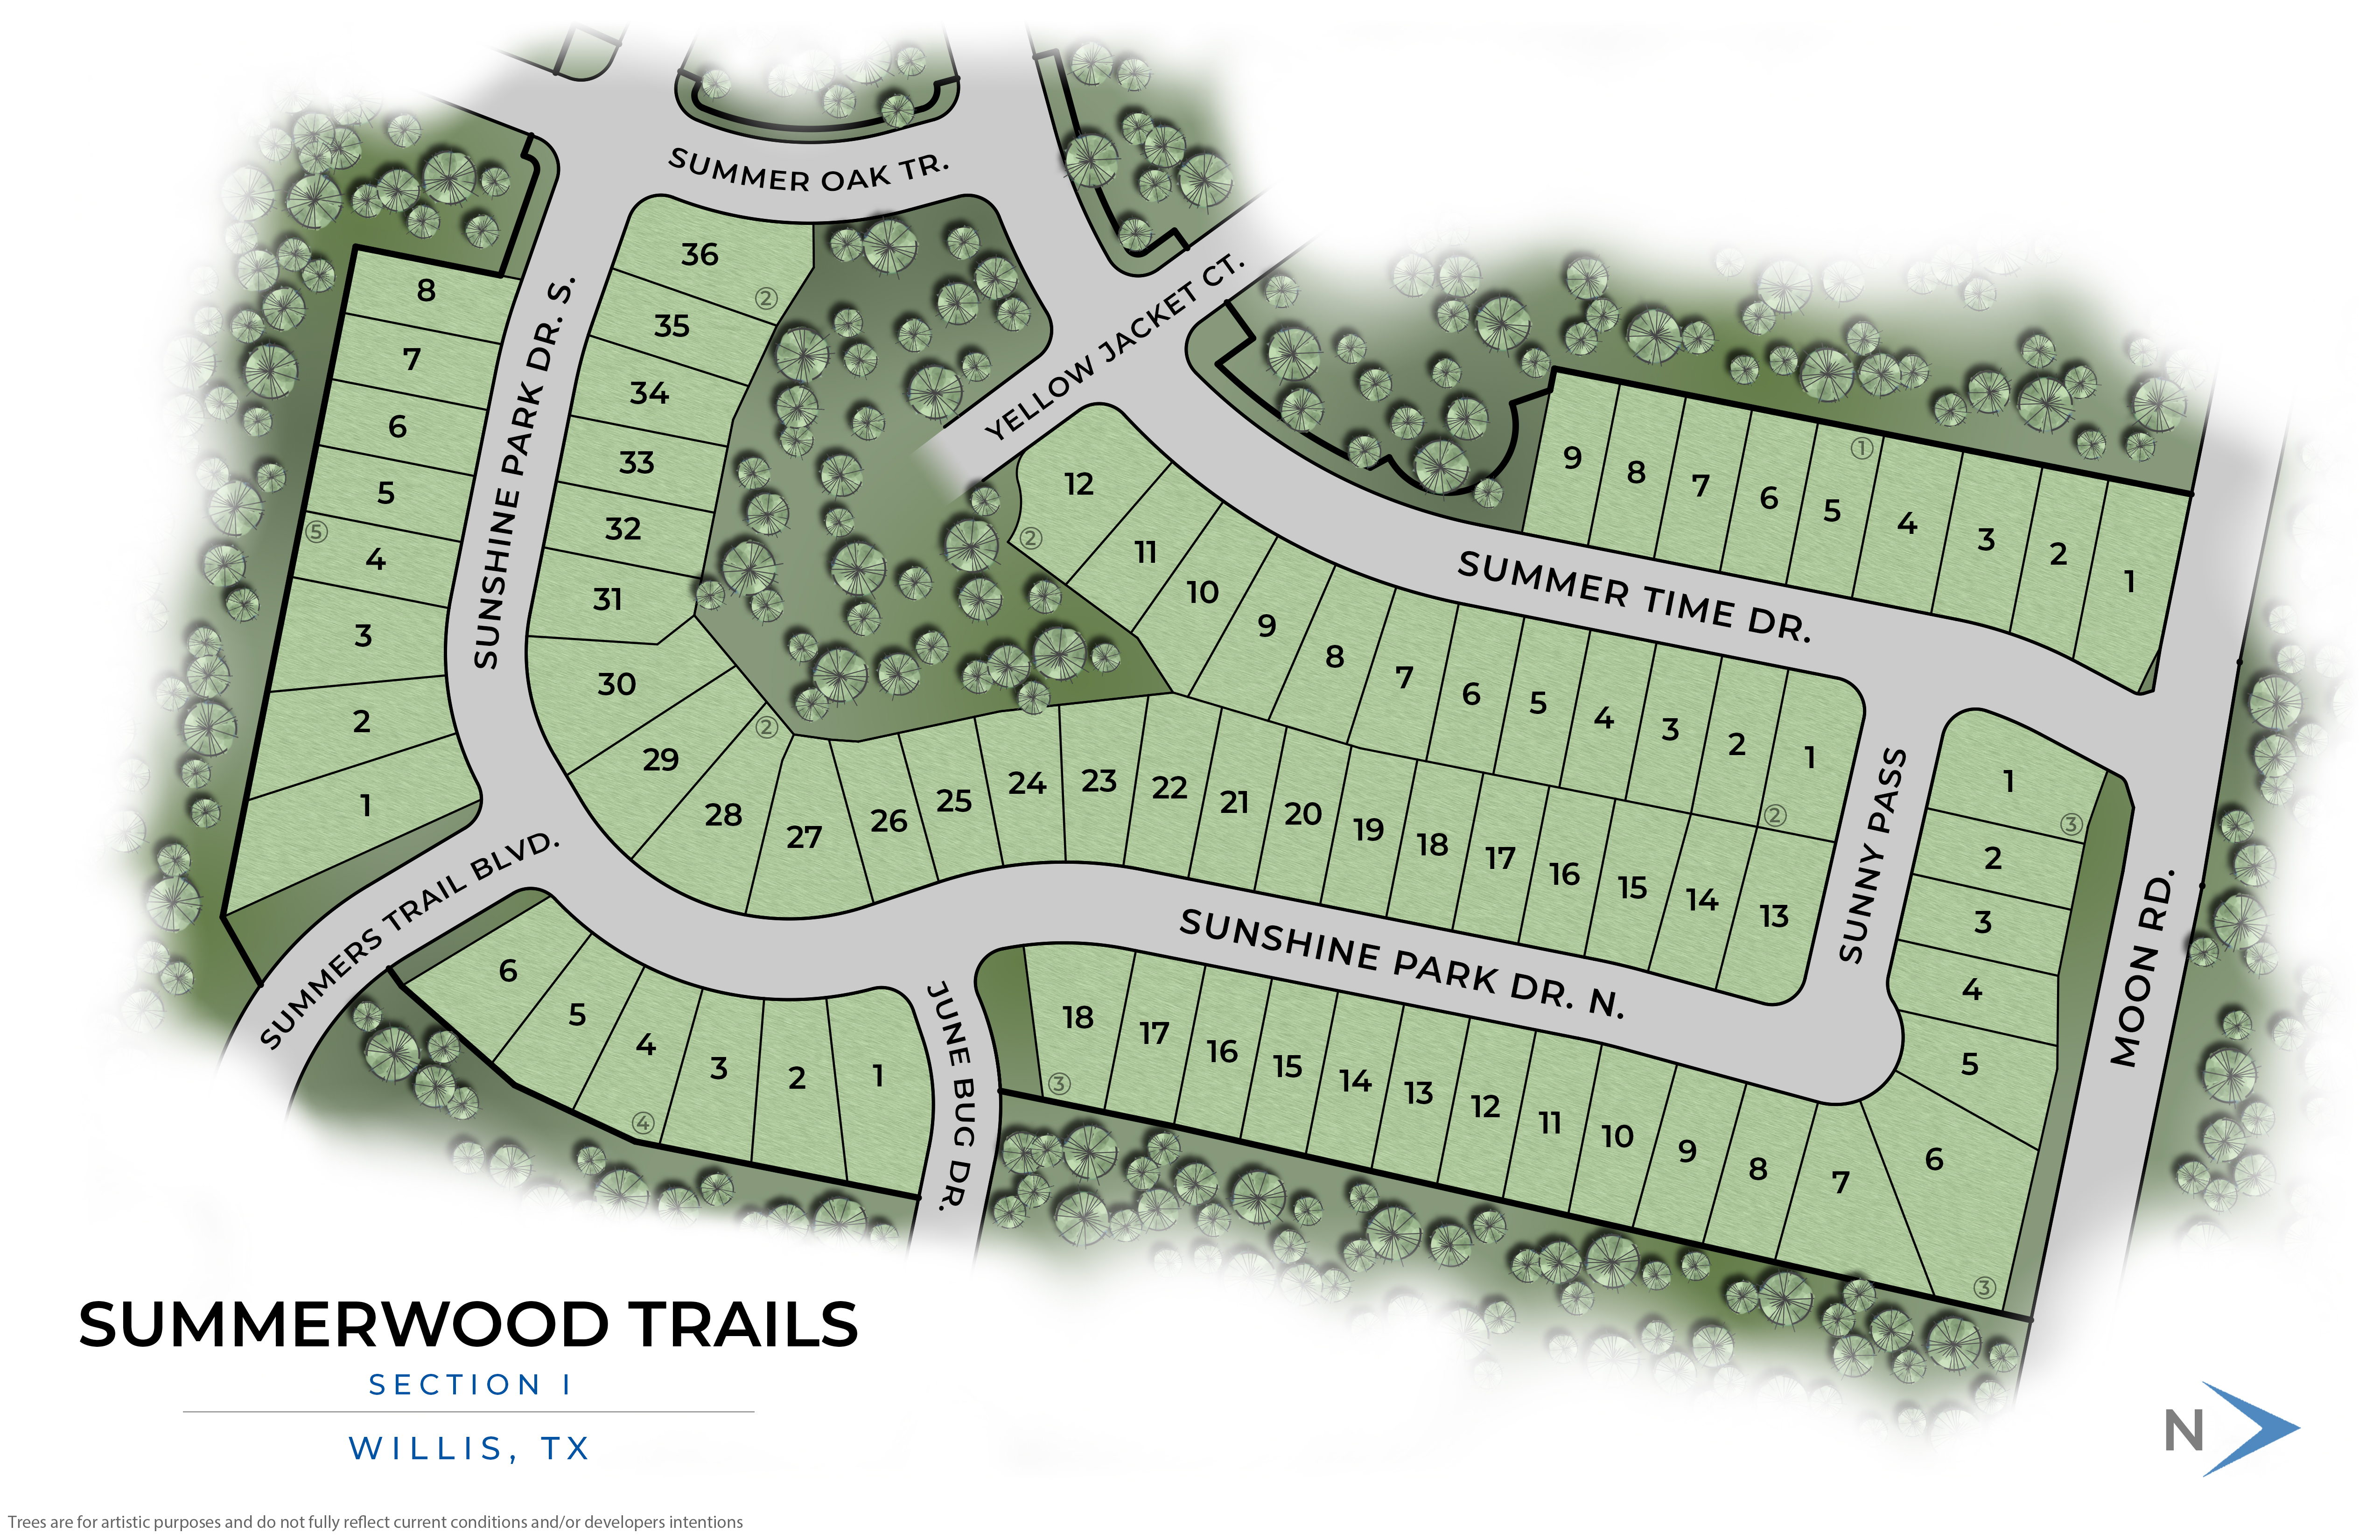 Willis, TX Summerwood Trails  New Homes from Stylecraft Builders